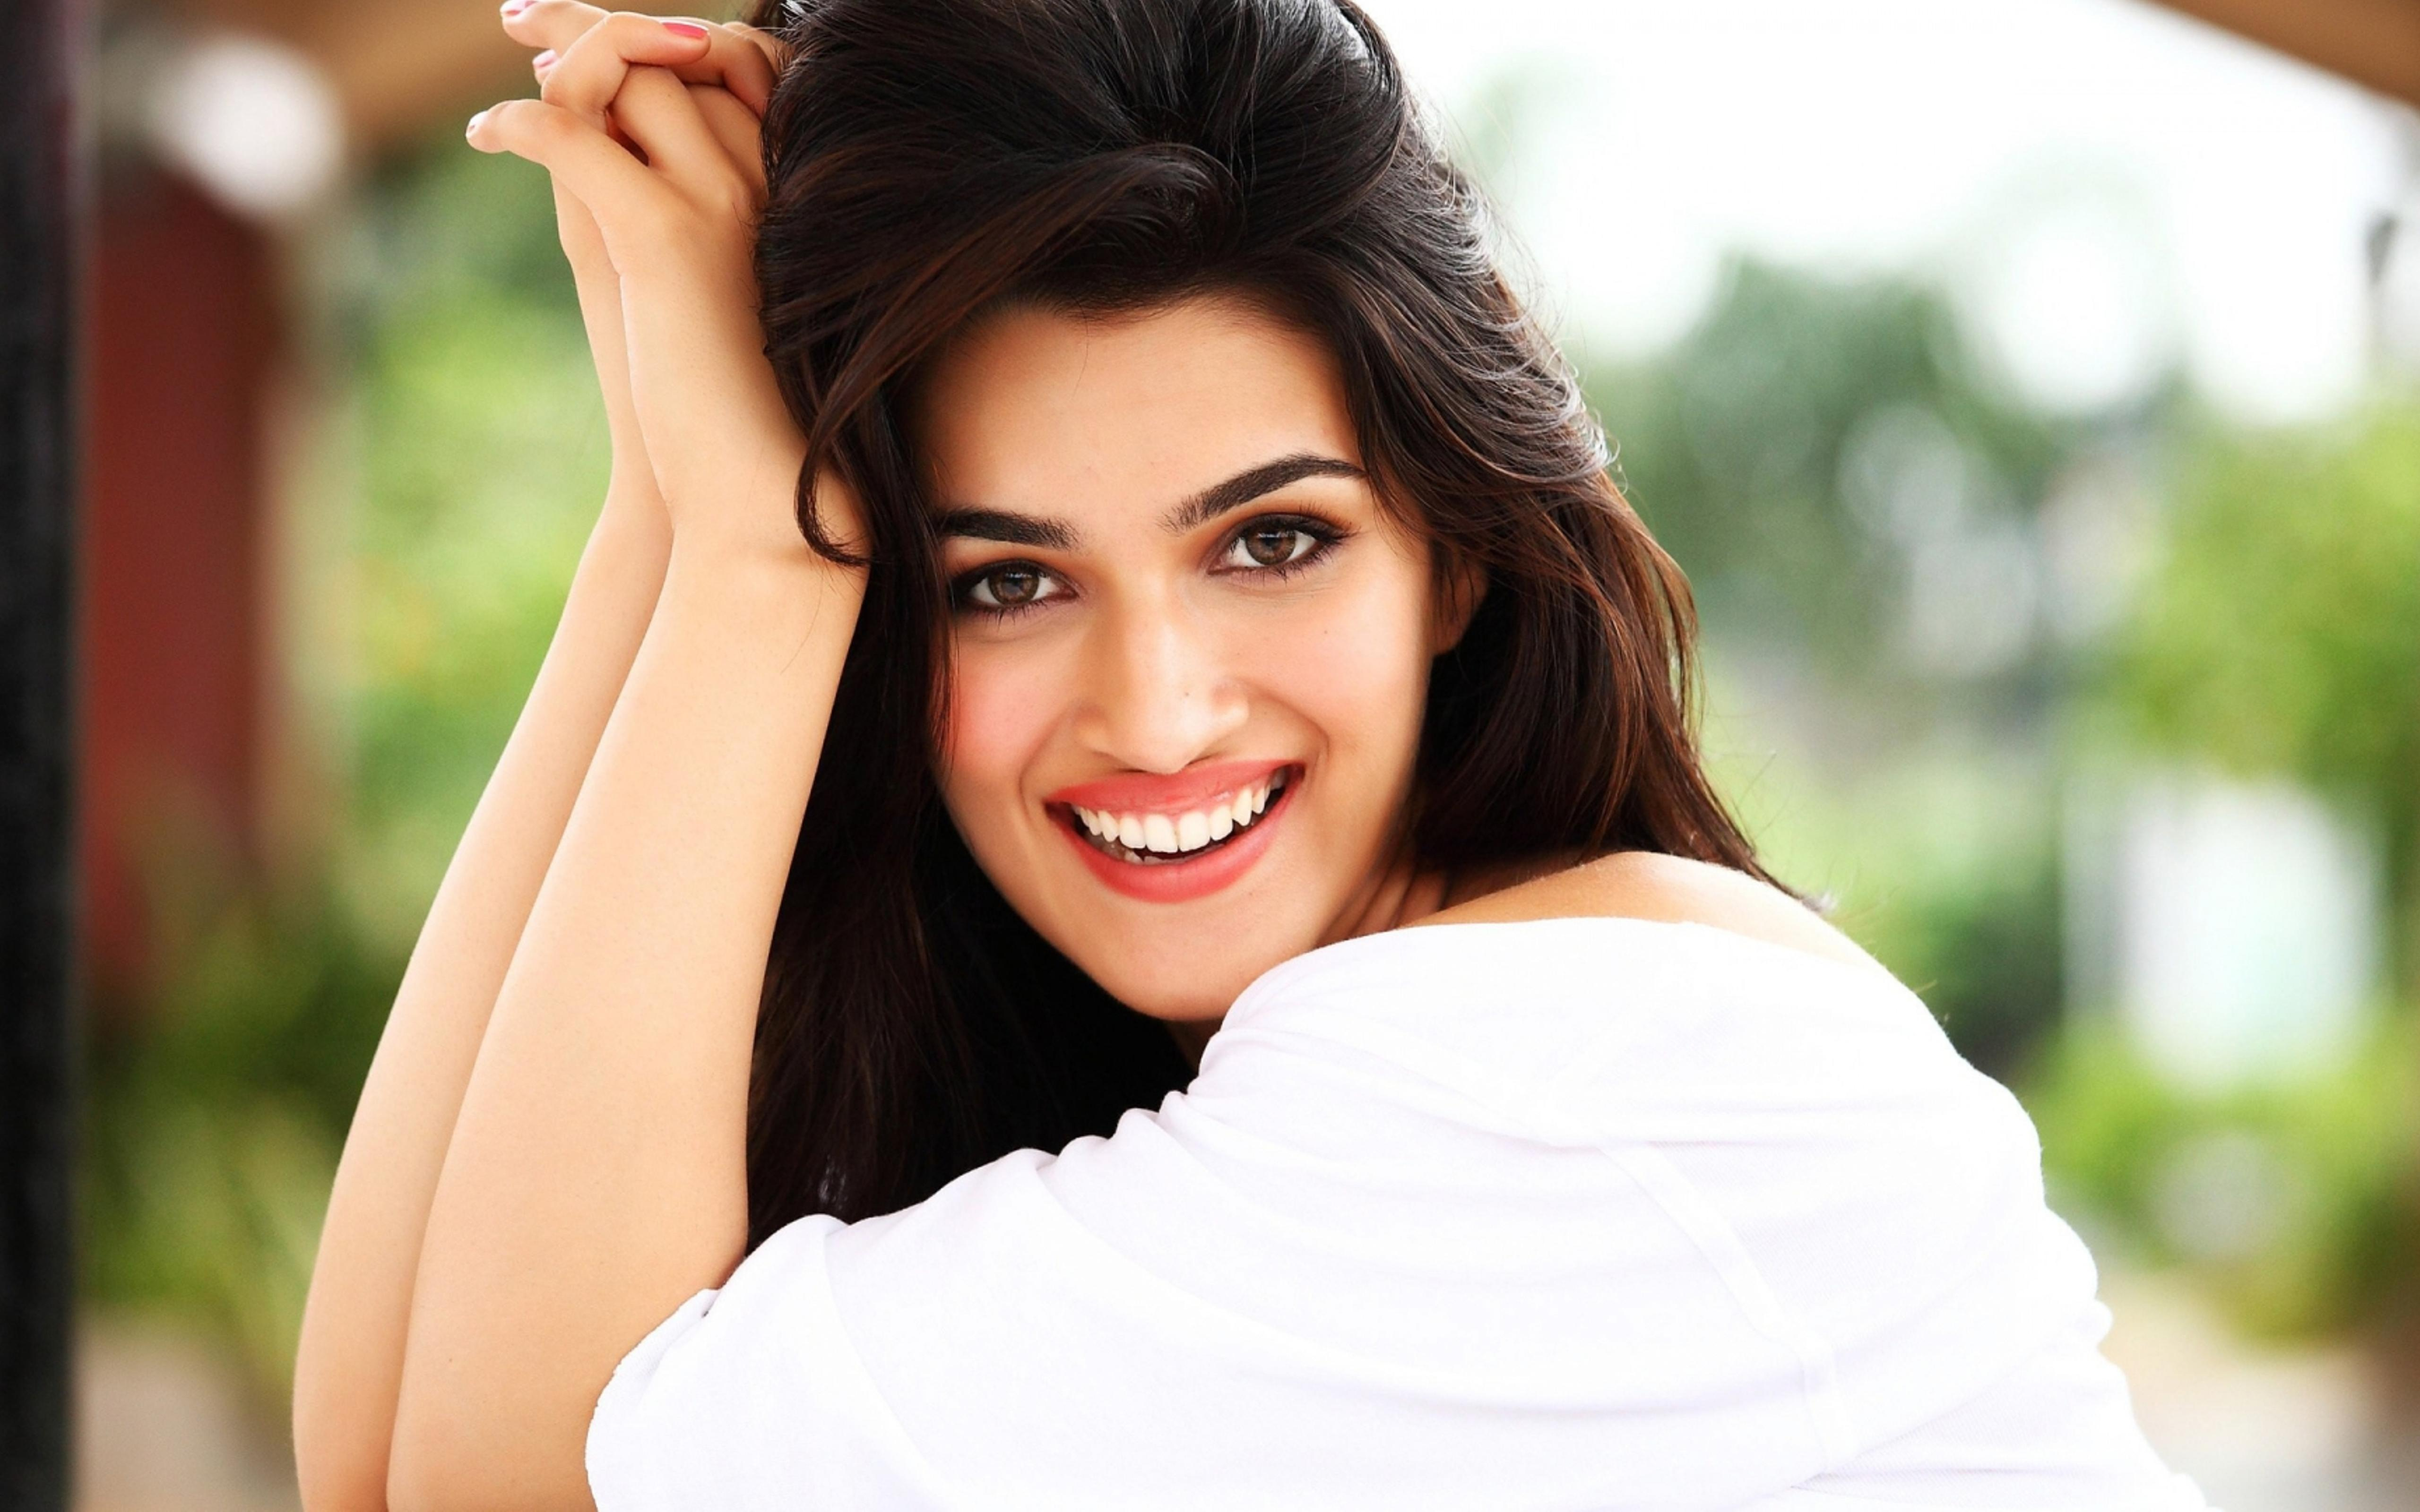 Kriti Sanon in white shirt and with a smile on her face 5120x3200 ...